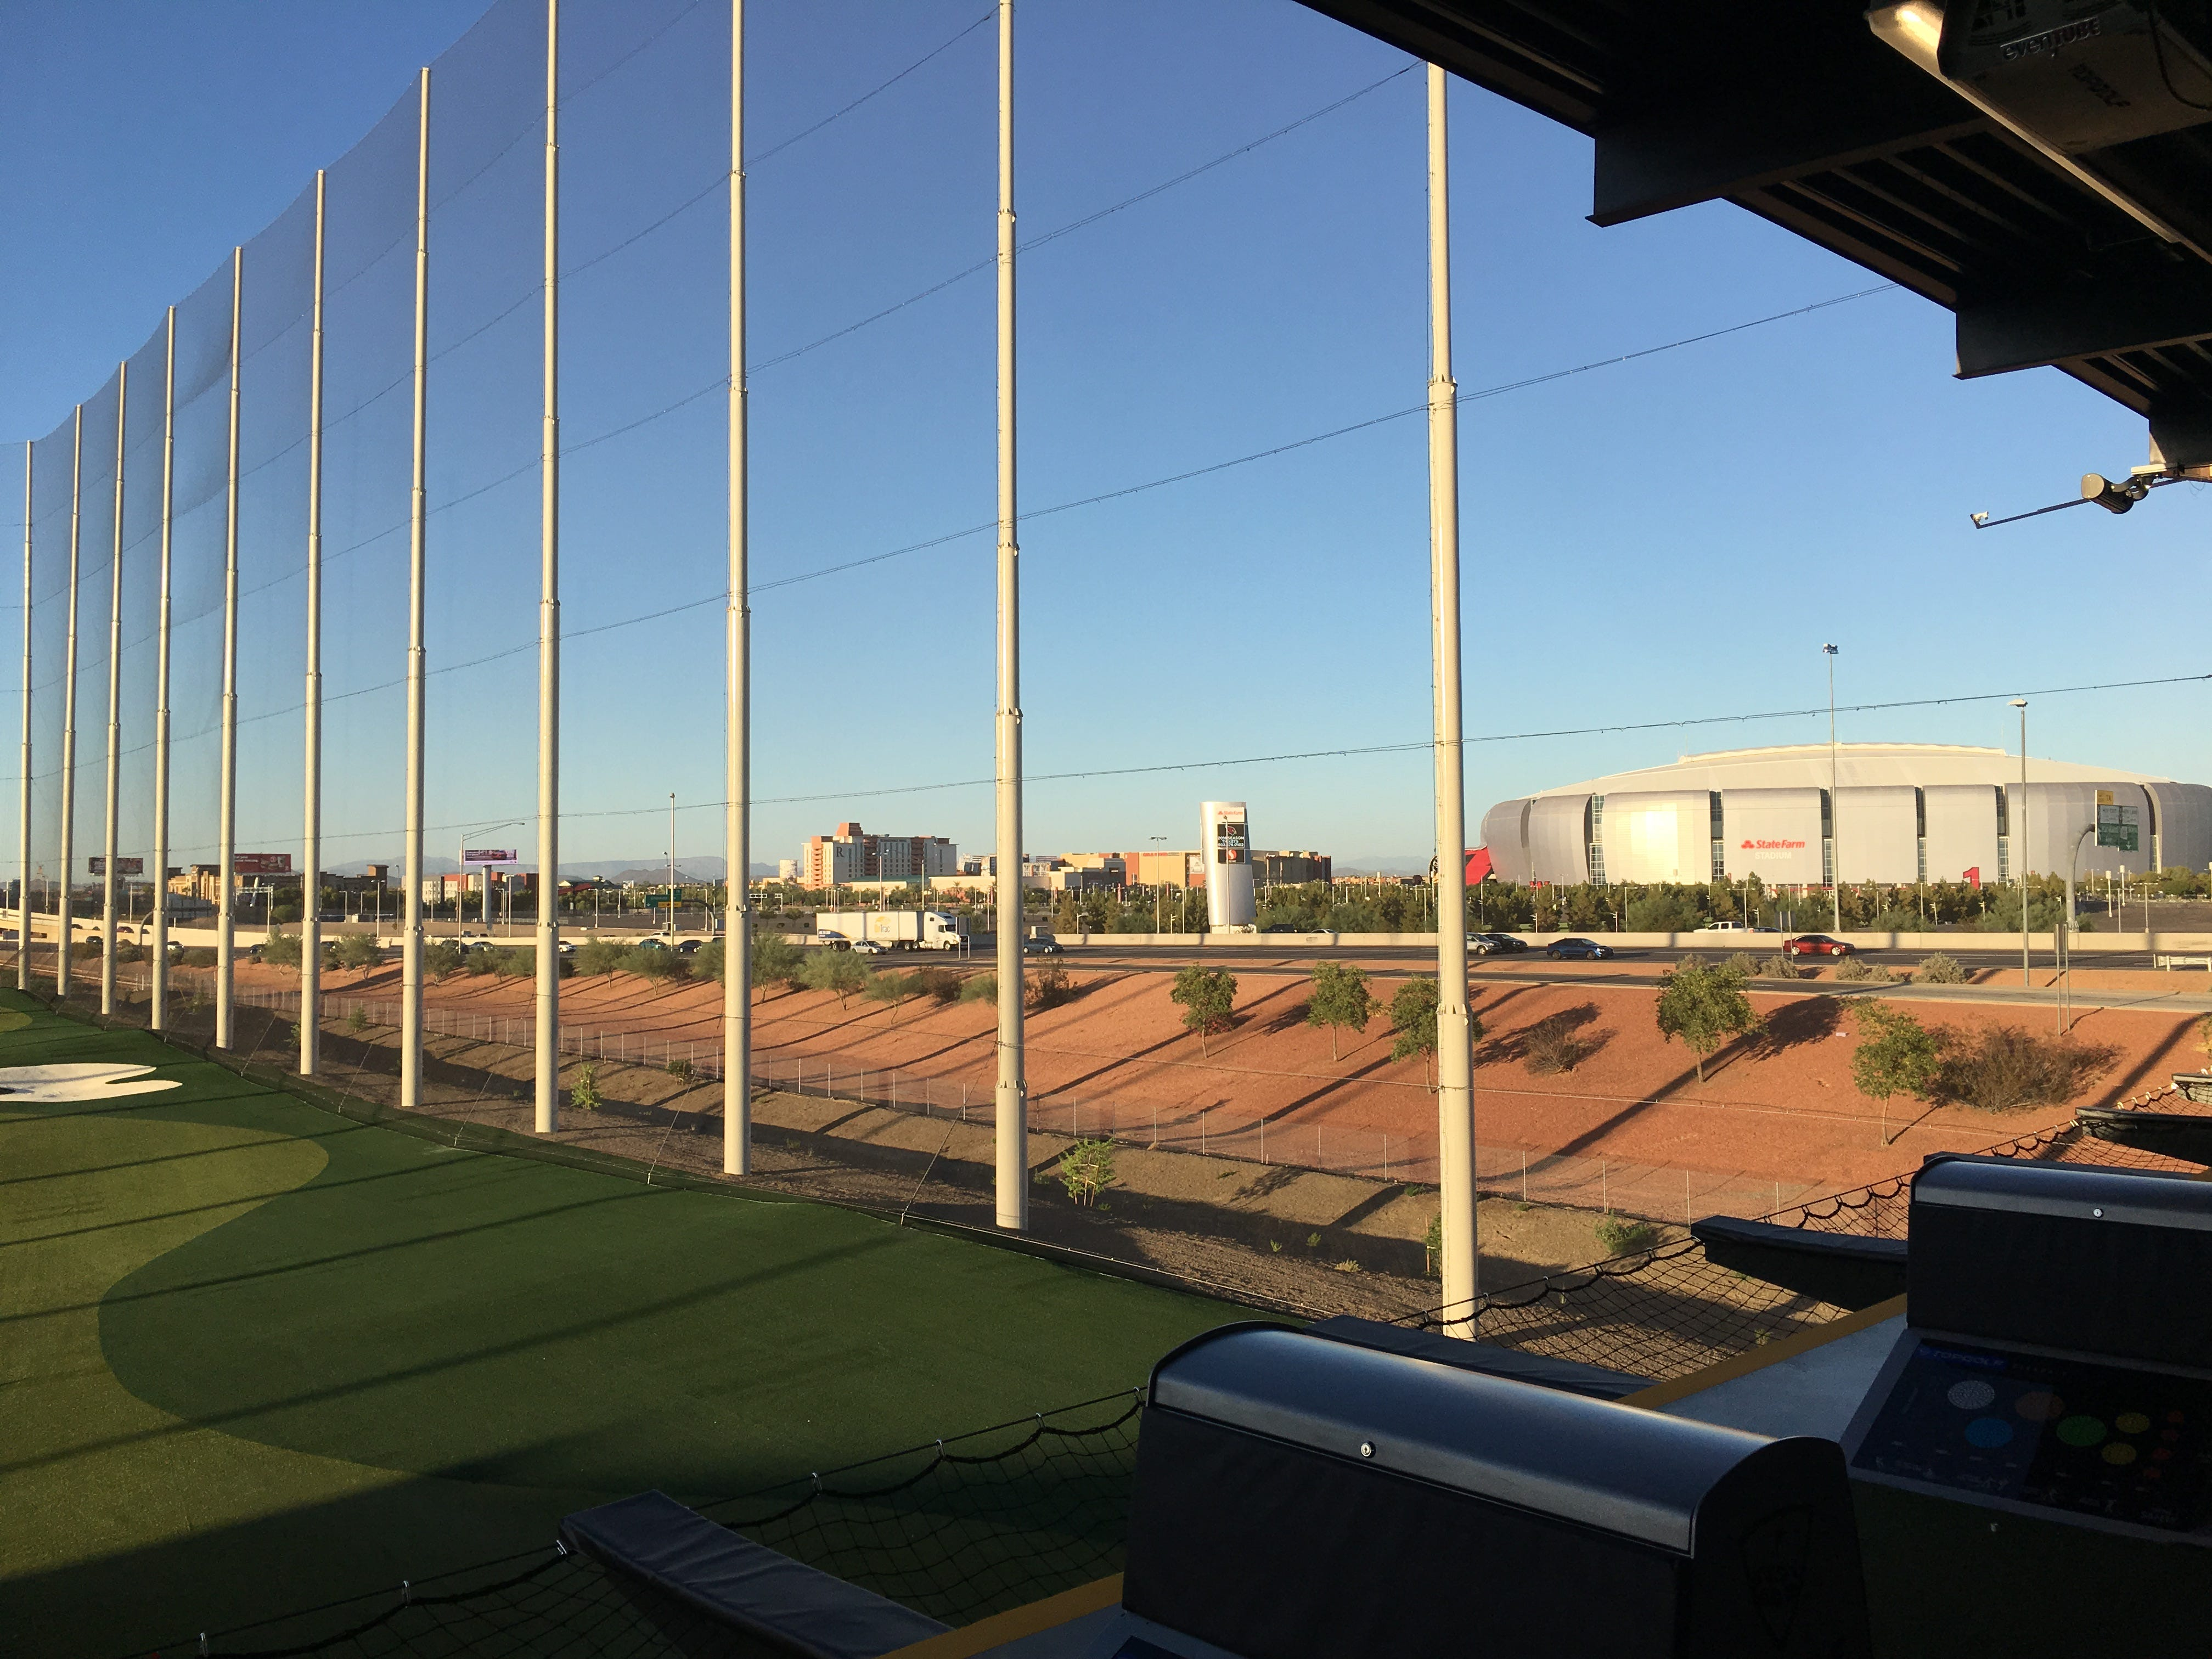 Topgolf's newest Valley location in Glendale features views of Westgate Entertainment District and State Farm Stadium, home of the Arizona Cardinals.